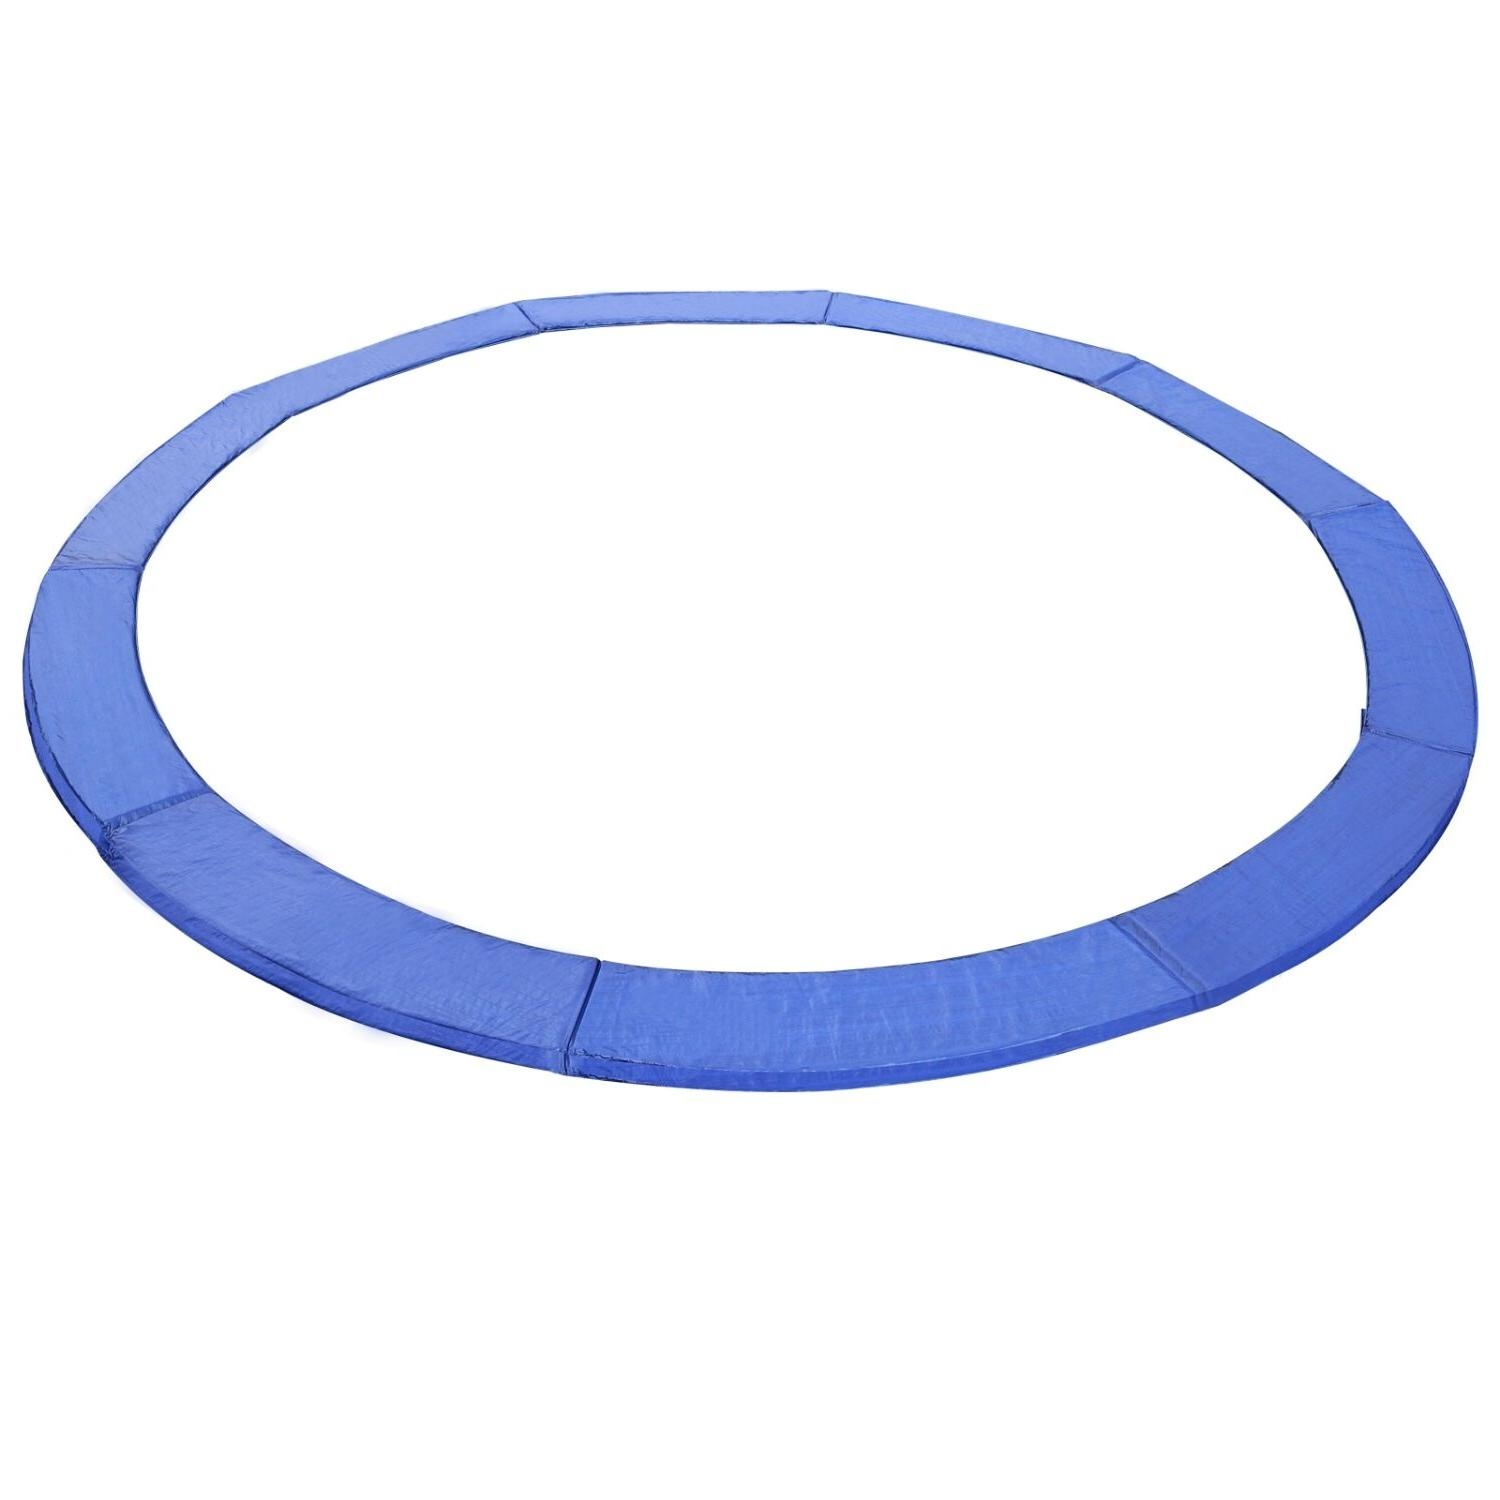 12/14/15 FT Trampoline Pad Spring Pad Cover